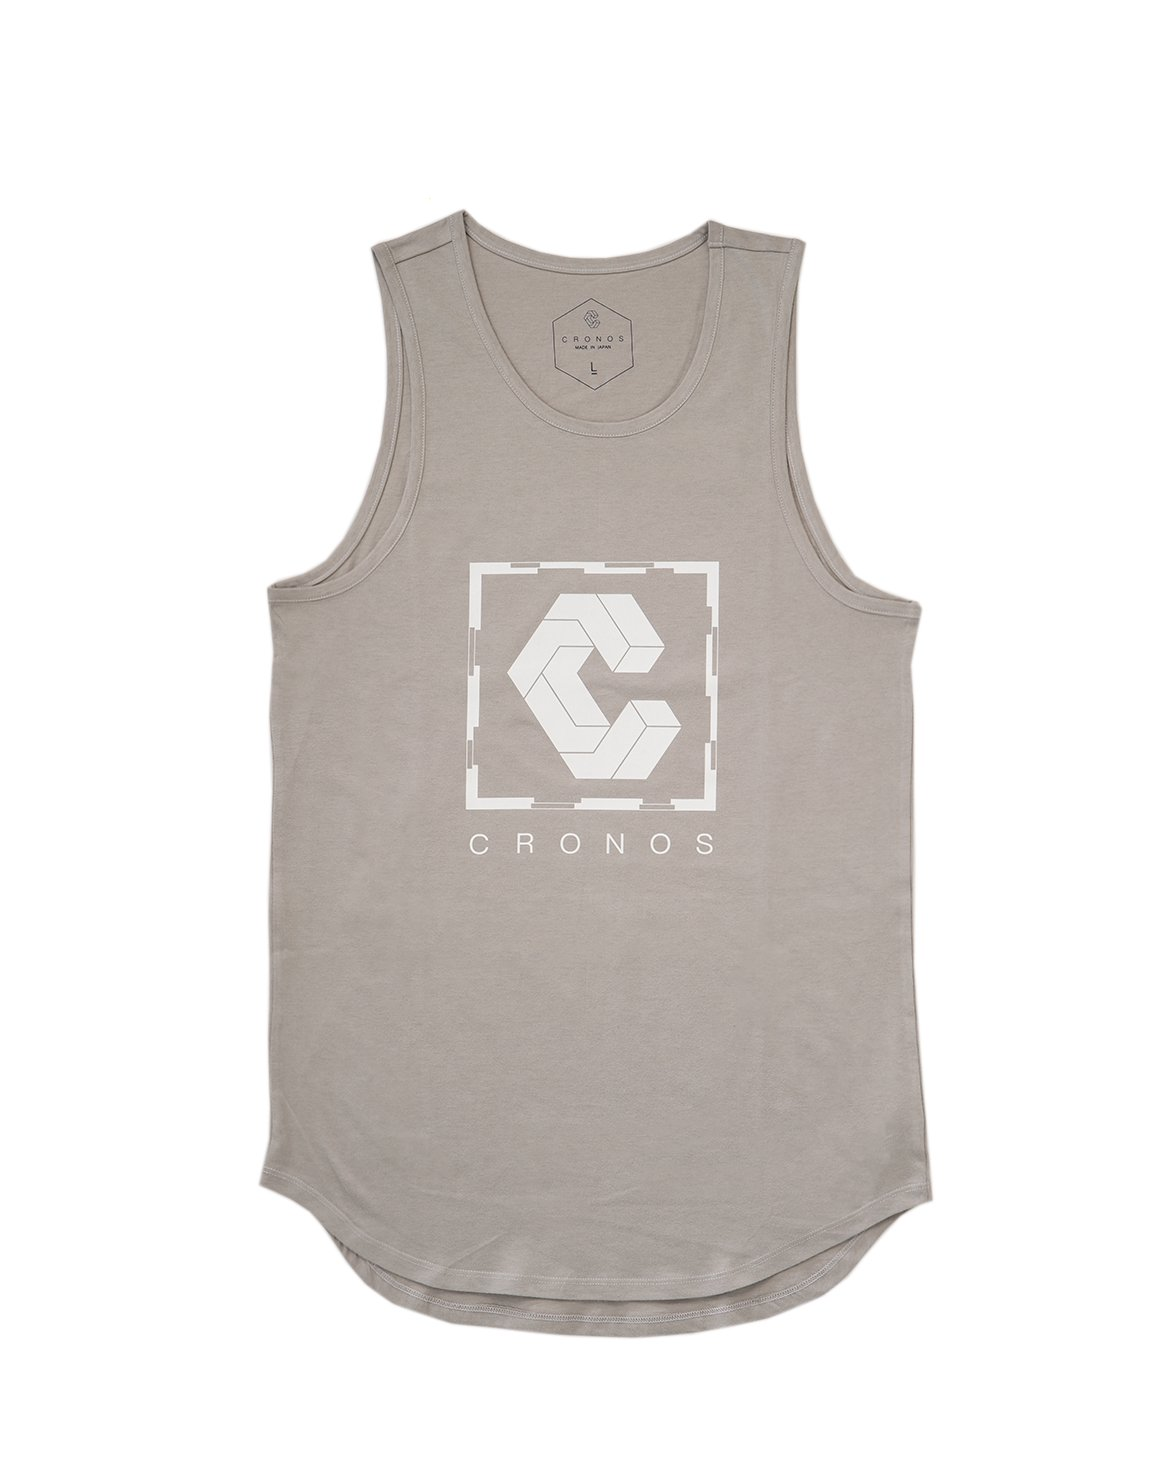 <img class='new_mark_img1' src='https://img.shop-pro.jp/img/new/icons1.gif' style='border:none;display:inline;margin:0px;padding:0px;width:auto;' />CRONOS SQUARE LOGO TANK TOP 【LIGHT GRAY】